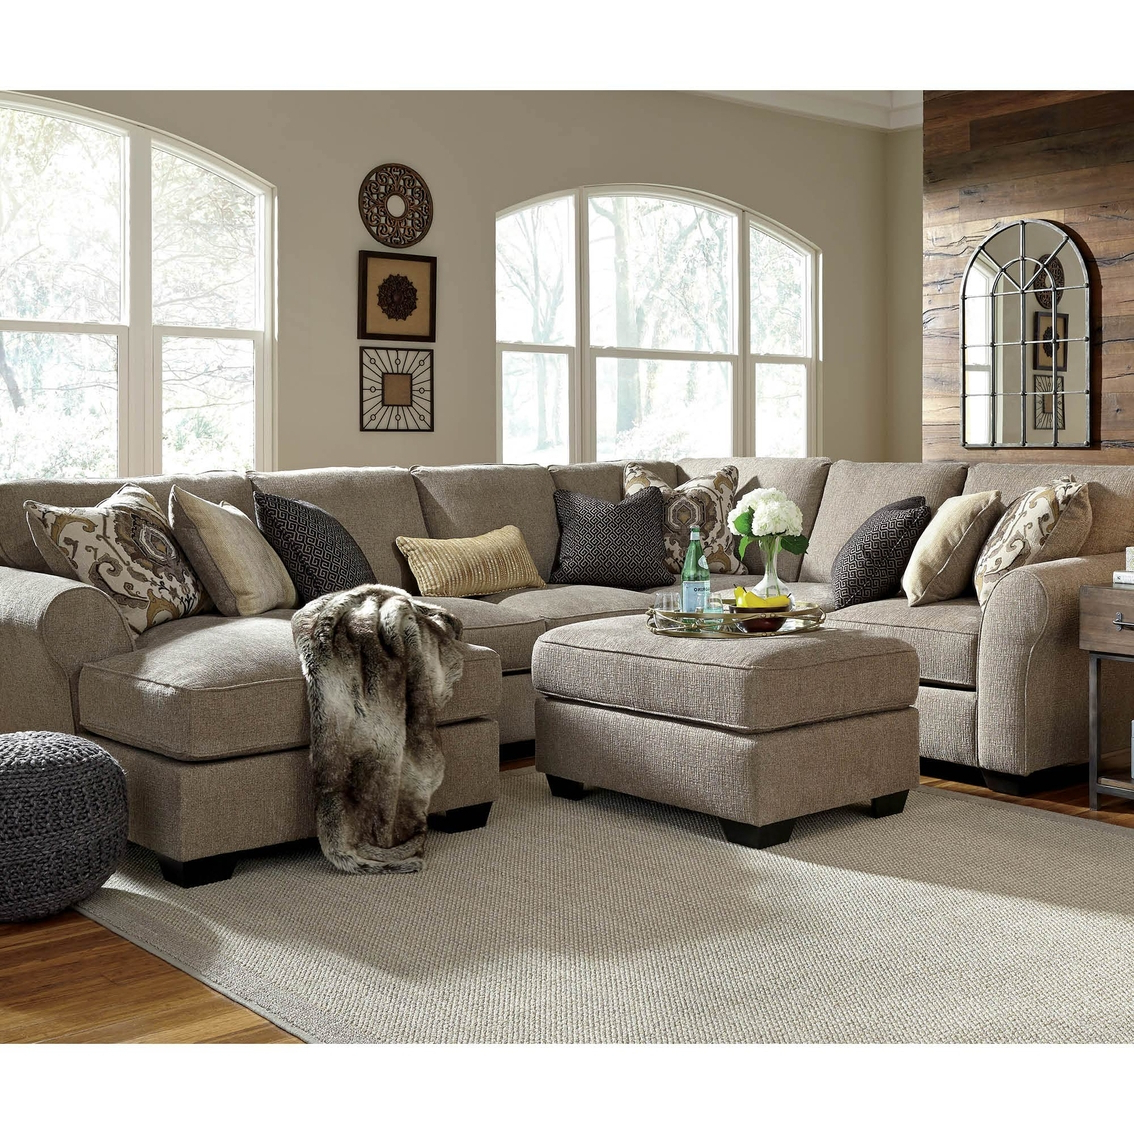 Baci Living Room Regarding Best And Newest Turdur 2 Piece Sectionals With Raf Loveseat (View 12 of 20)